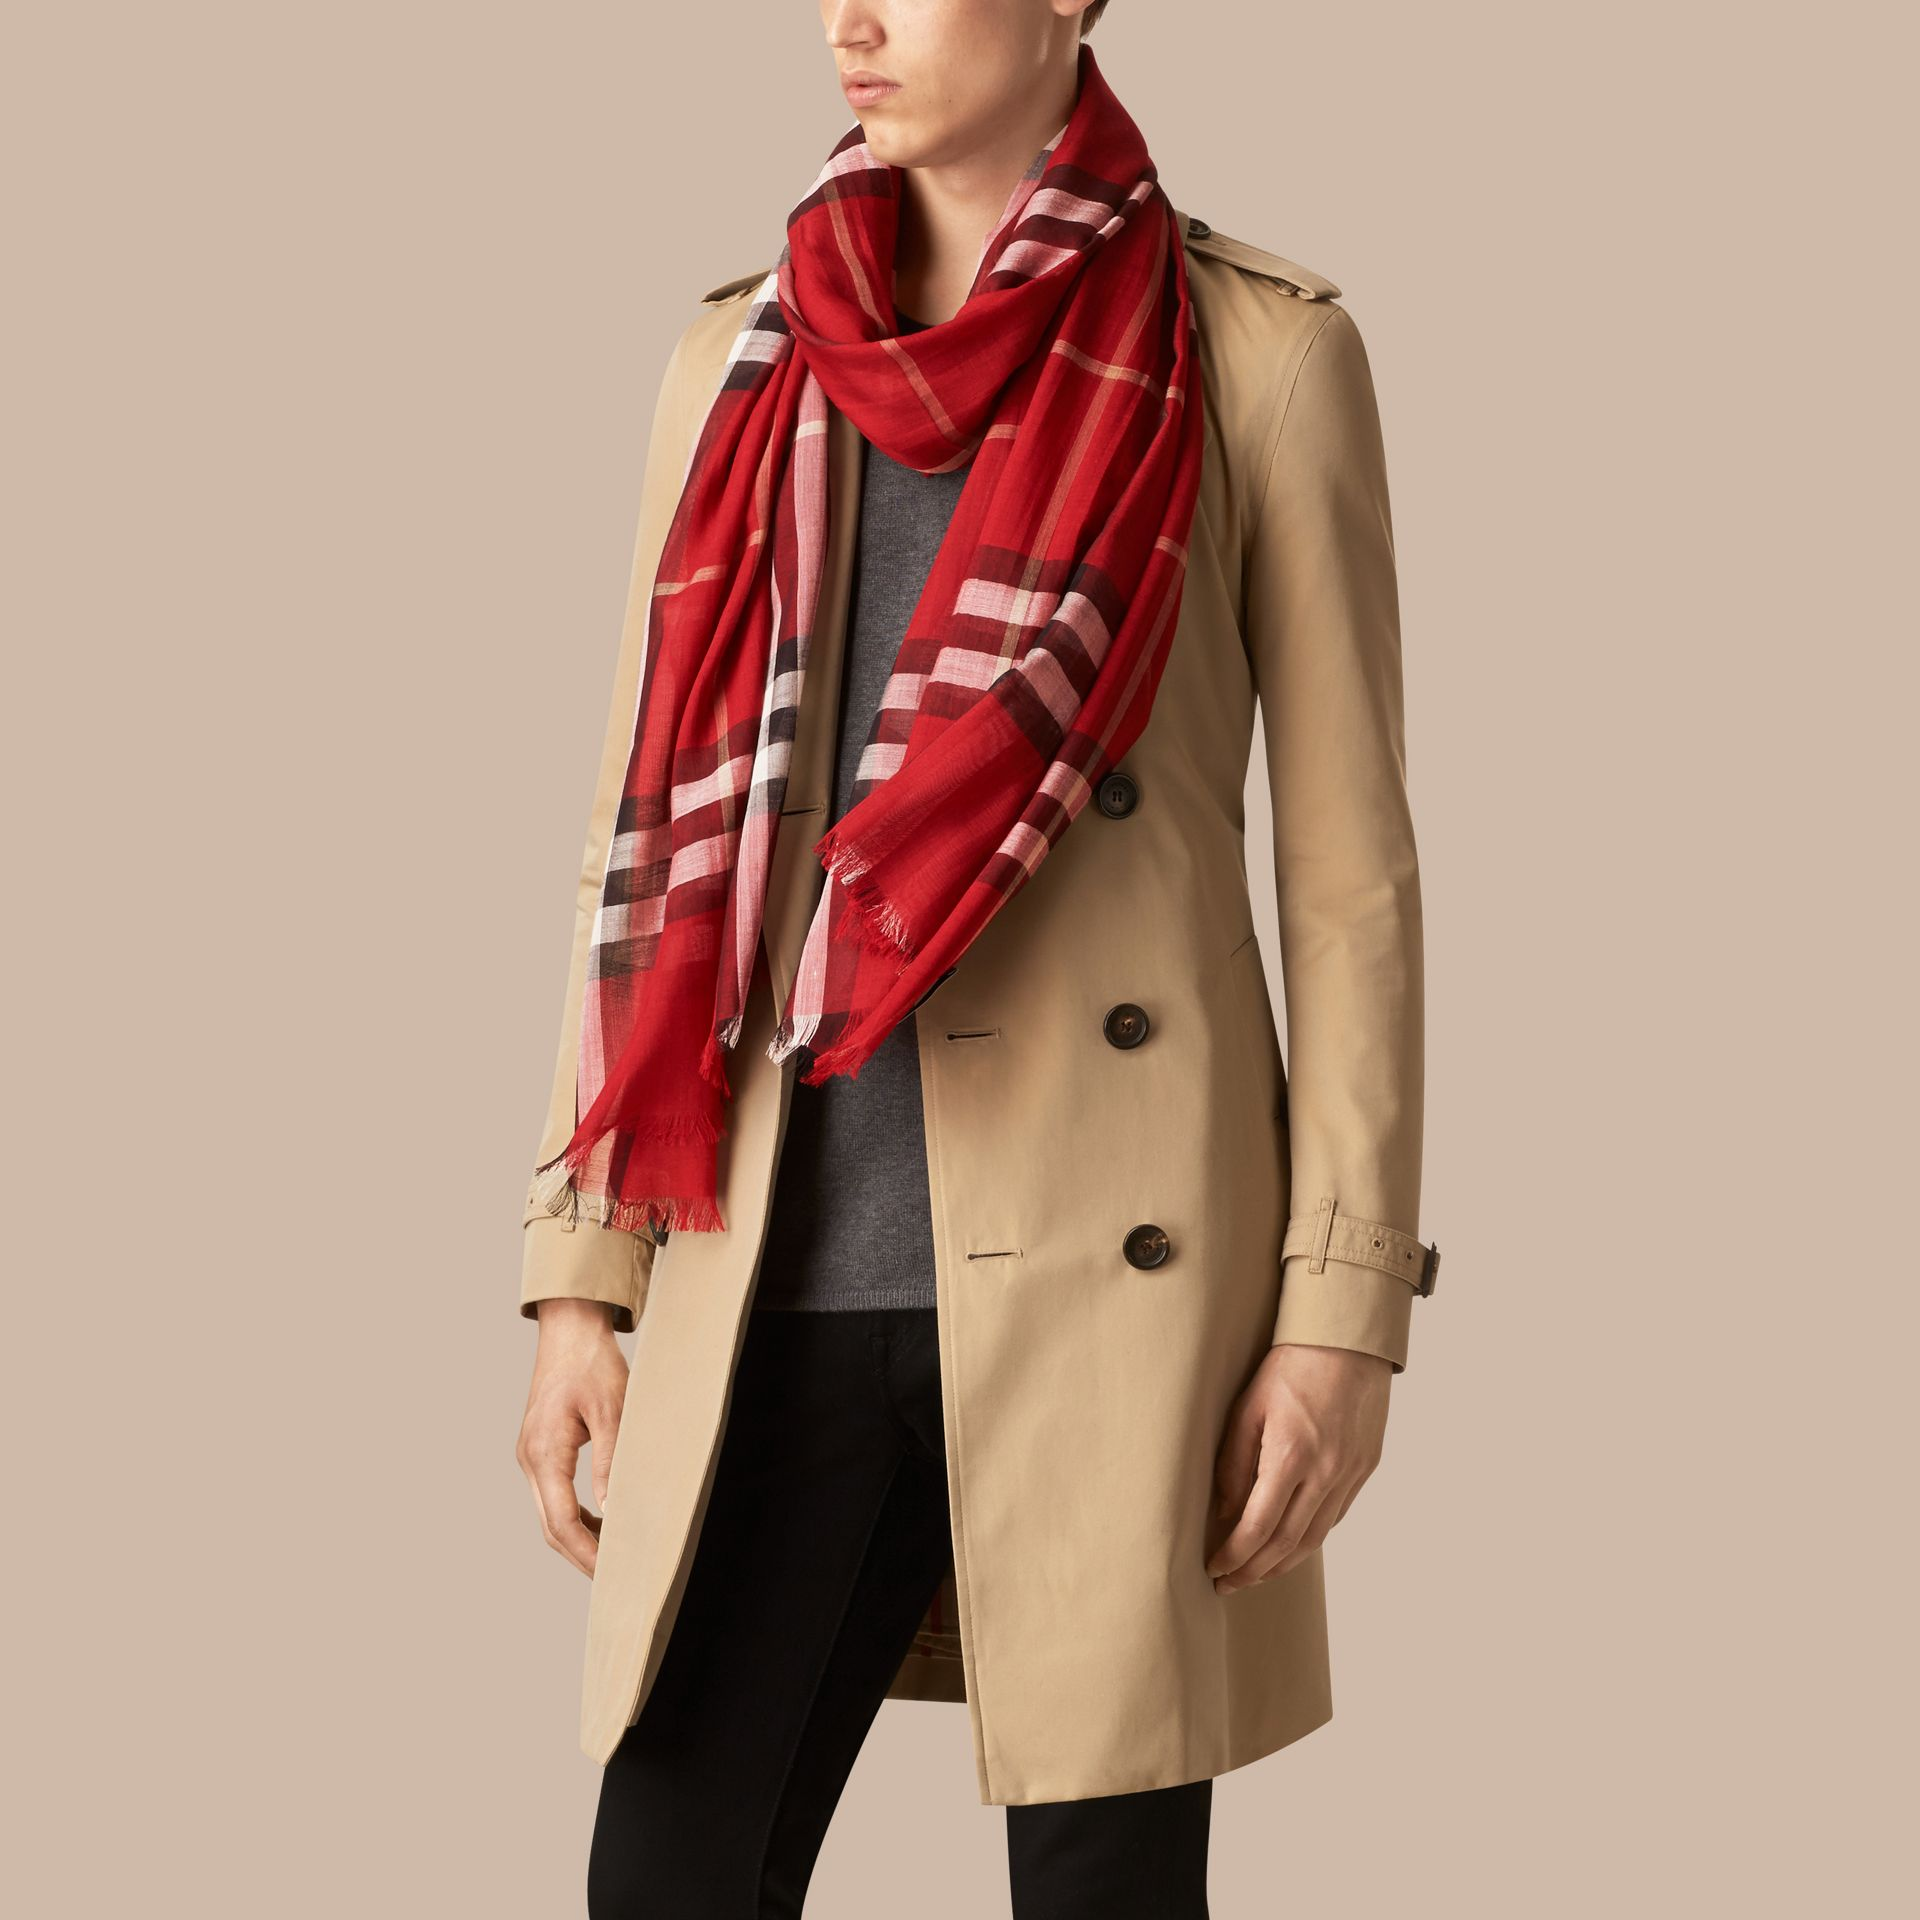 Lightweight Check Wool and Silk Scarf in Parade Red - Women | Burberry - gallery image 3